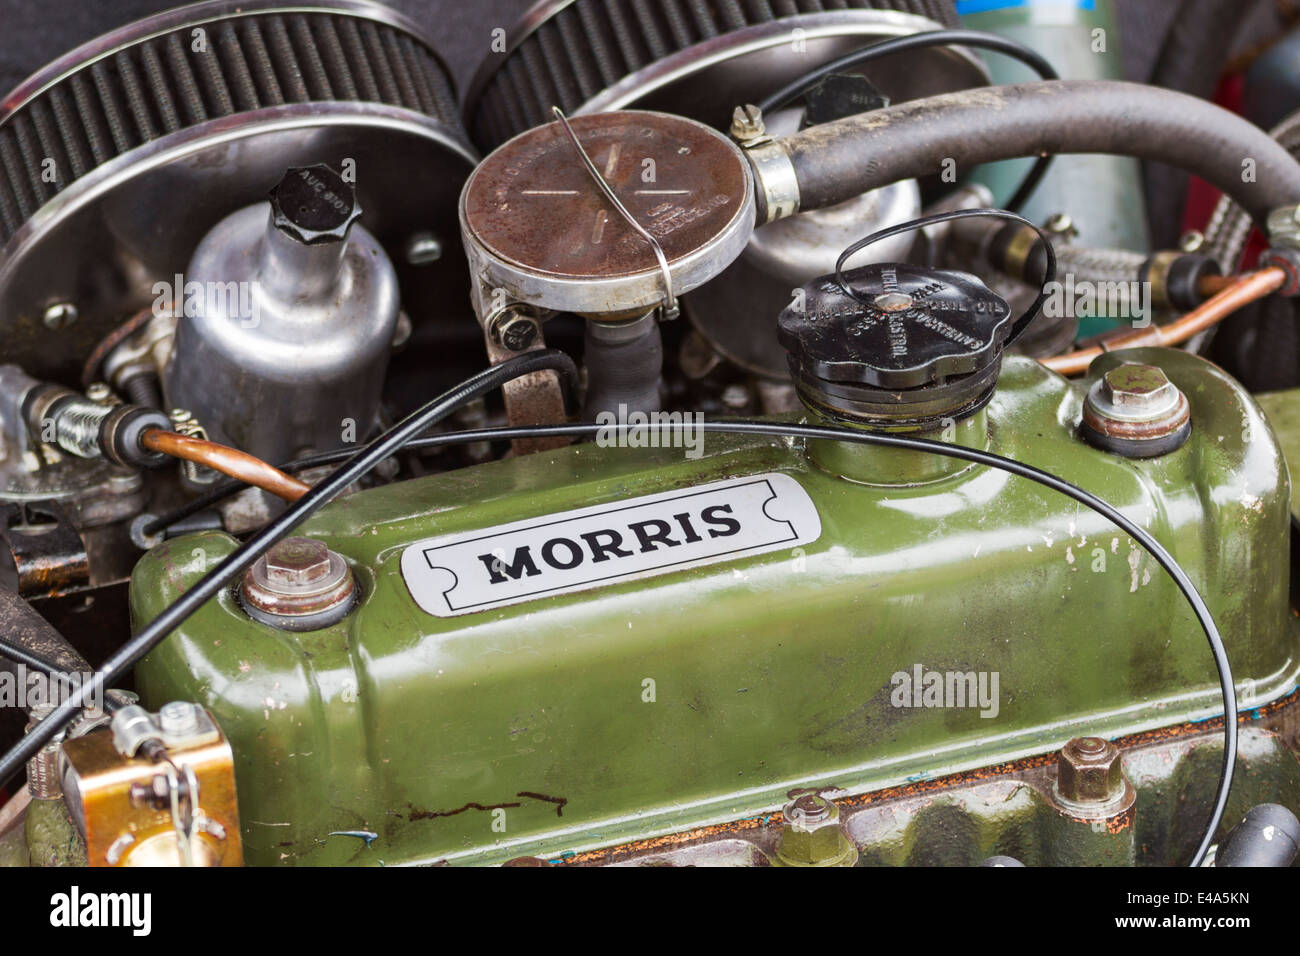 The engine of Morris Mini-Minor at a Mini rally in Northumberland, England - Stock Image